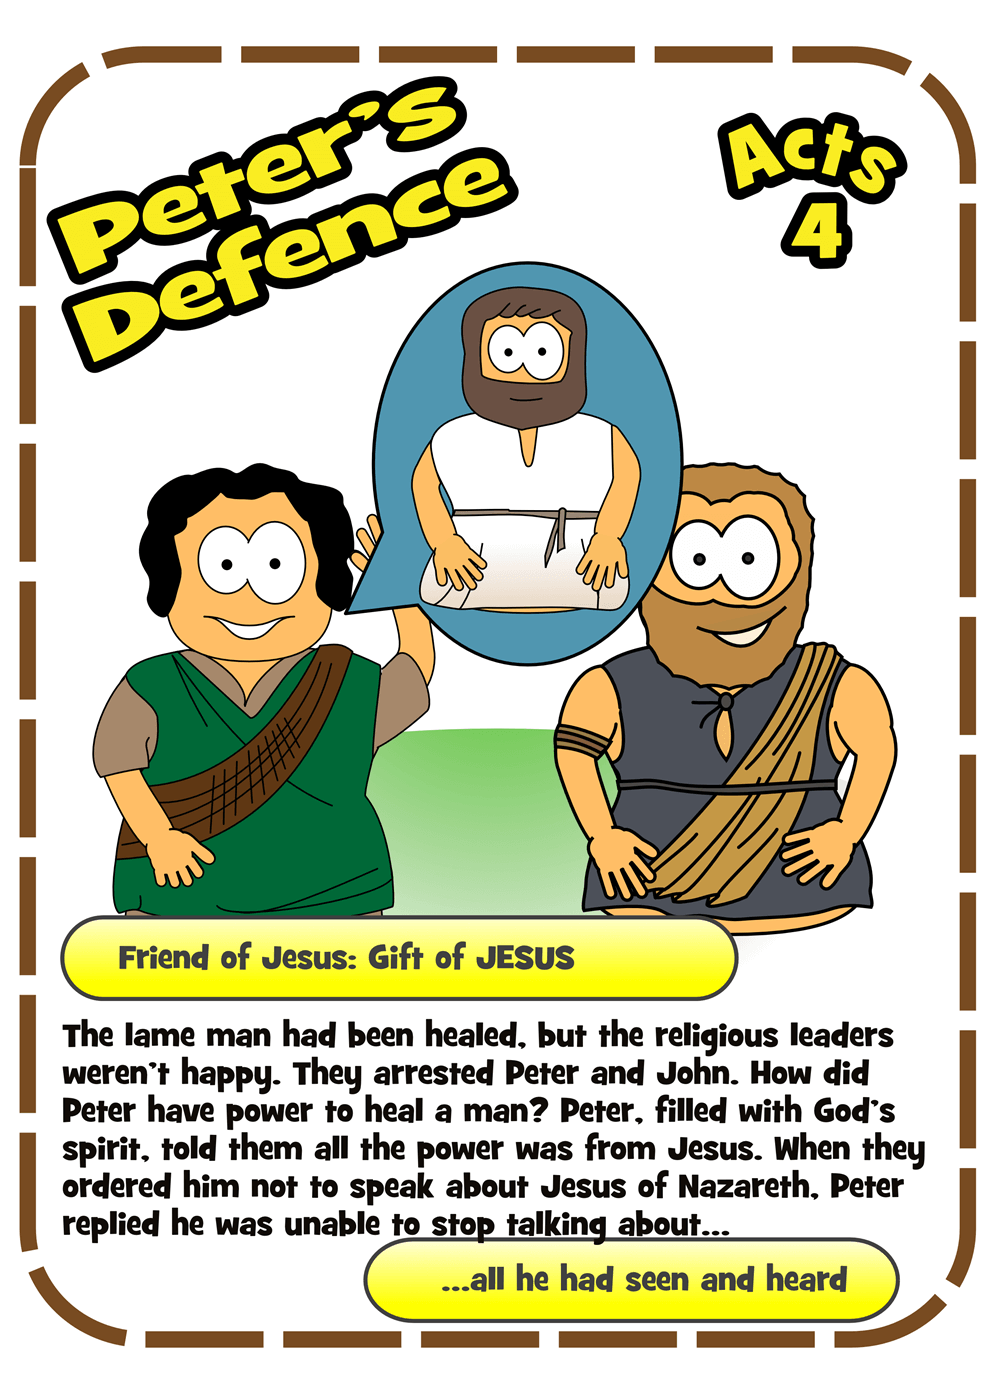 120-Peter-defence-card